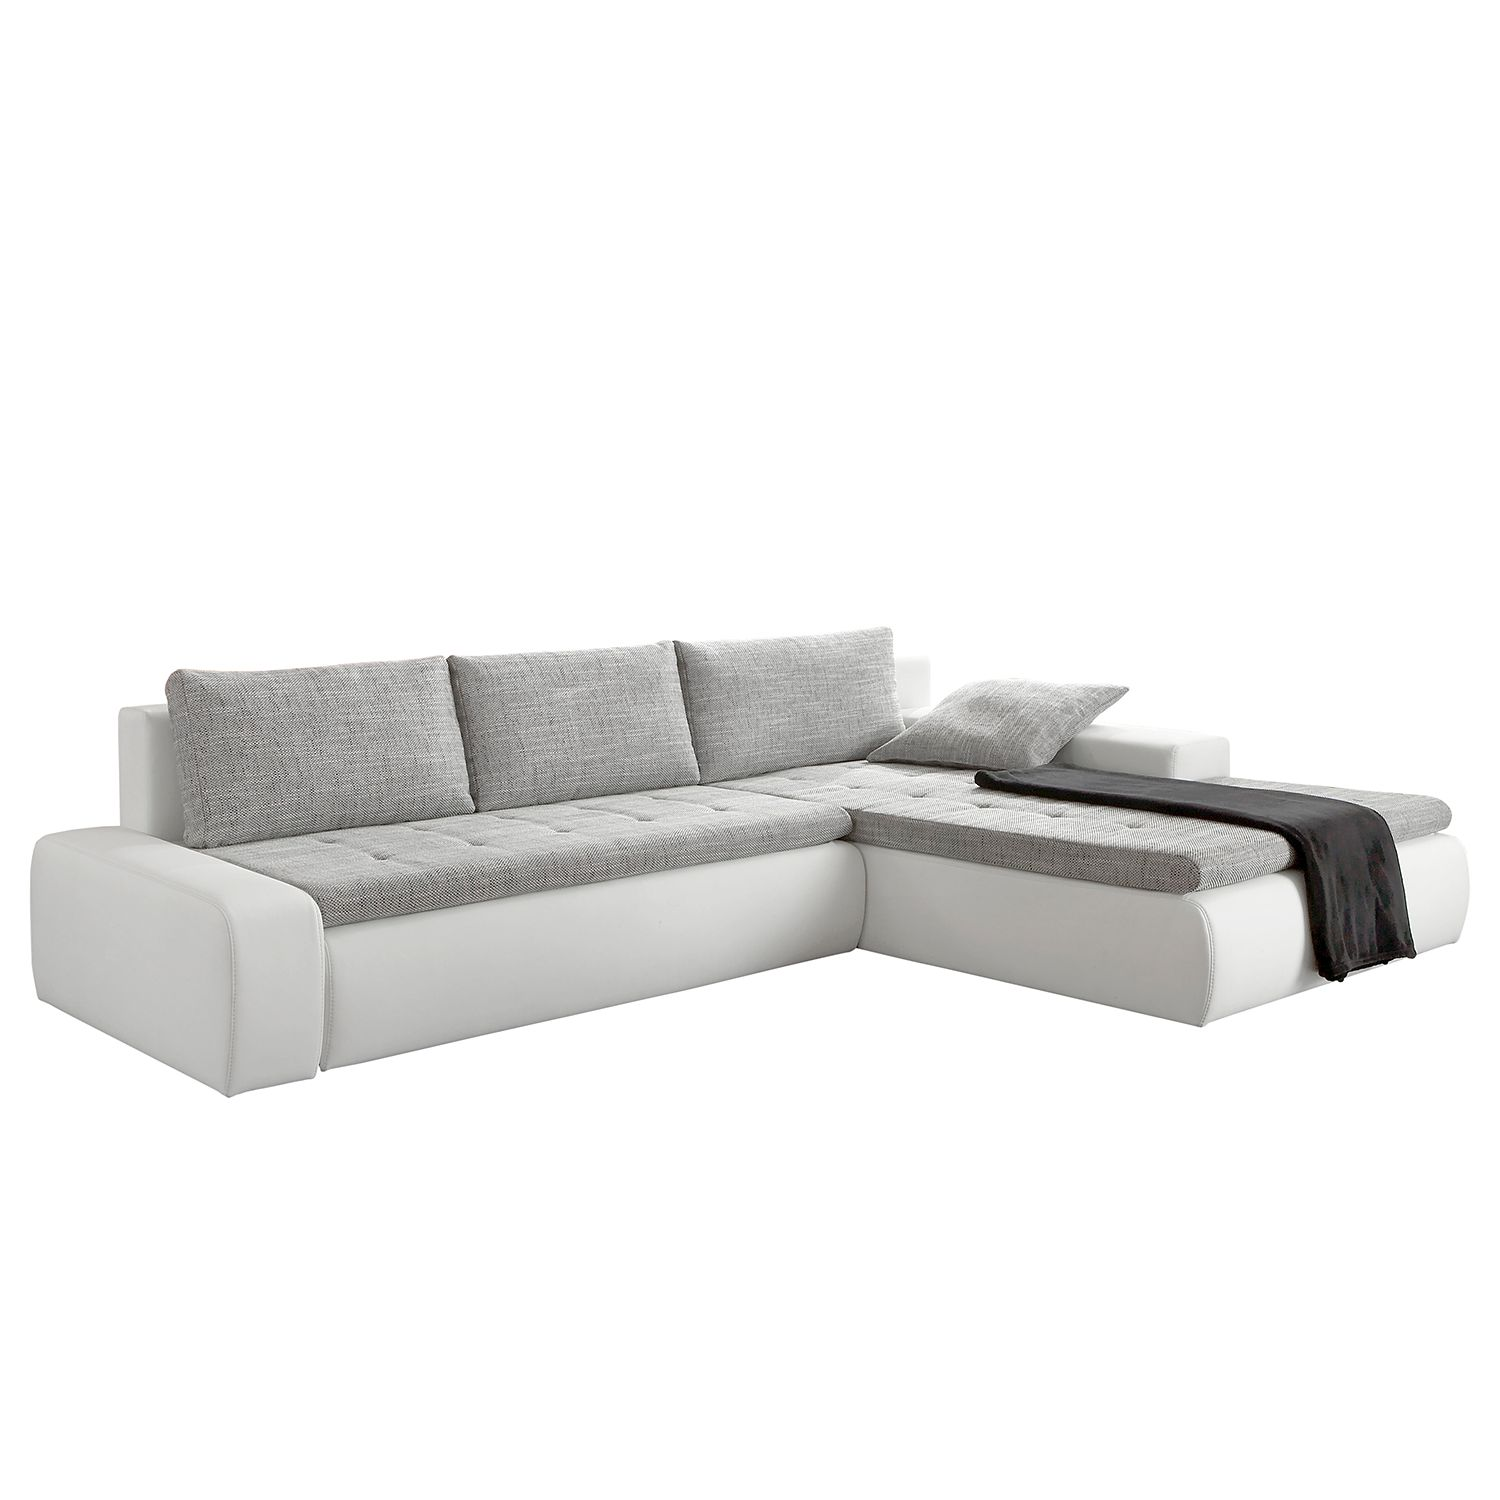 zenith canap angle gauche convertible gris blanc. Black Bedroom Furniture Sets. Home Design Ideas